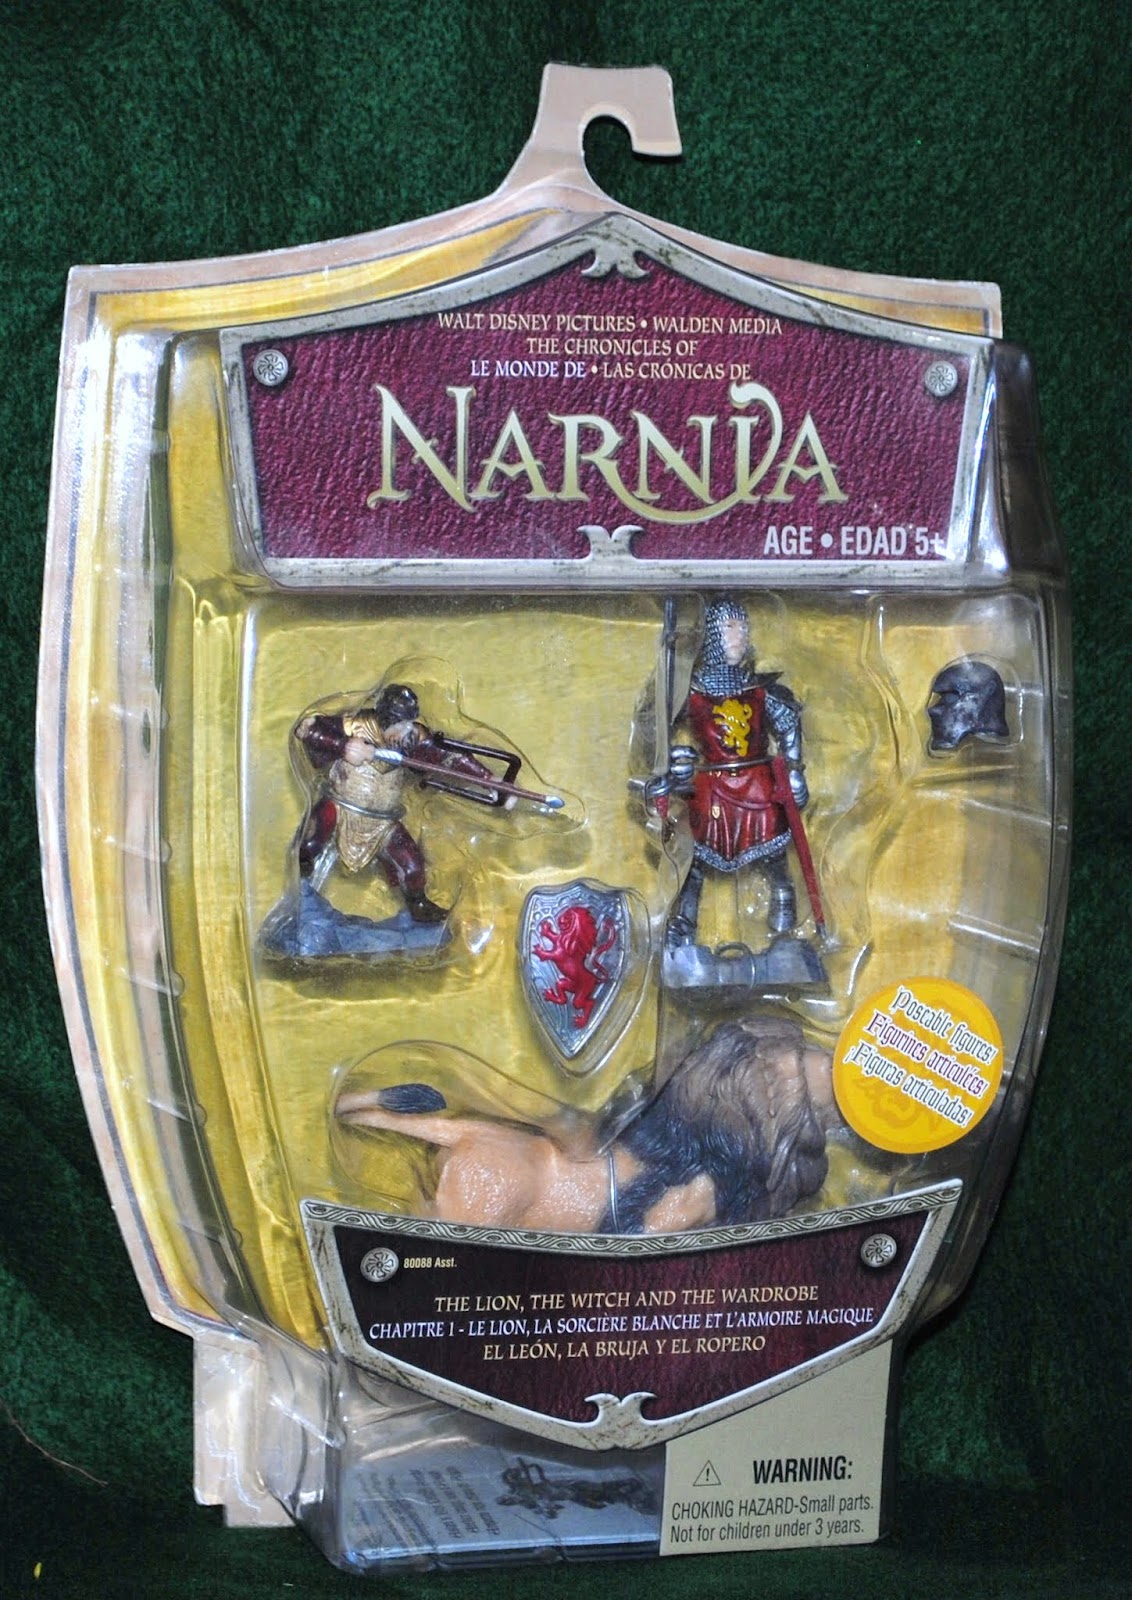 Fantasy Toy Soldiers Hasbro Disney Narnia Battle Scale